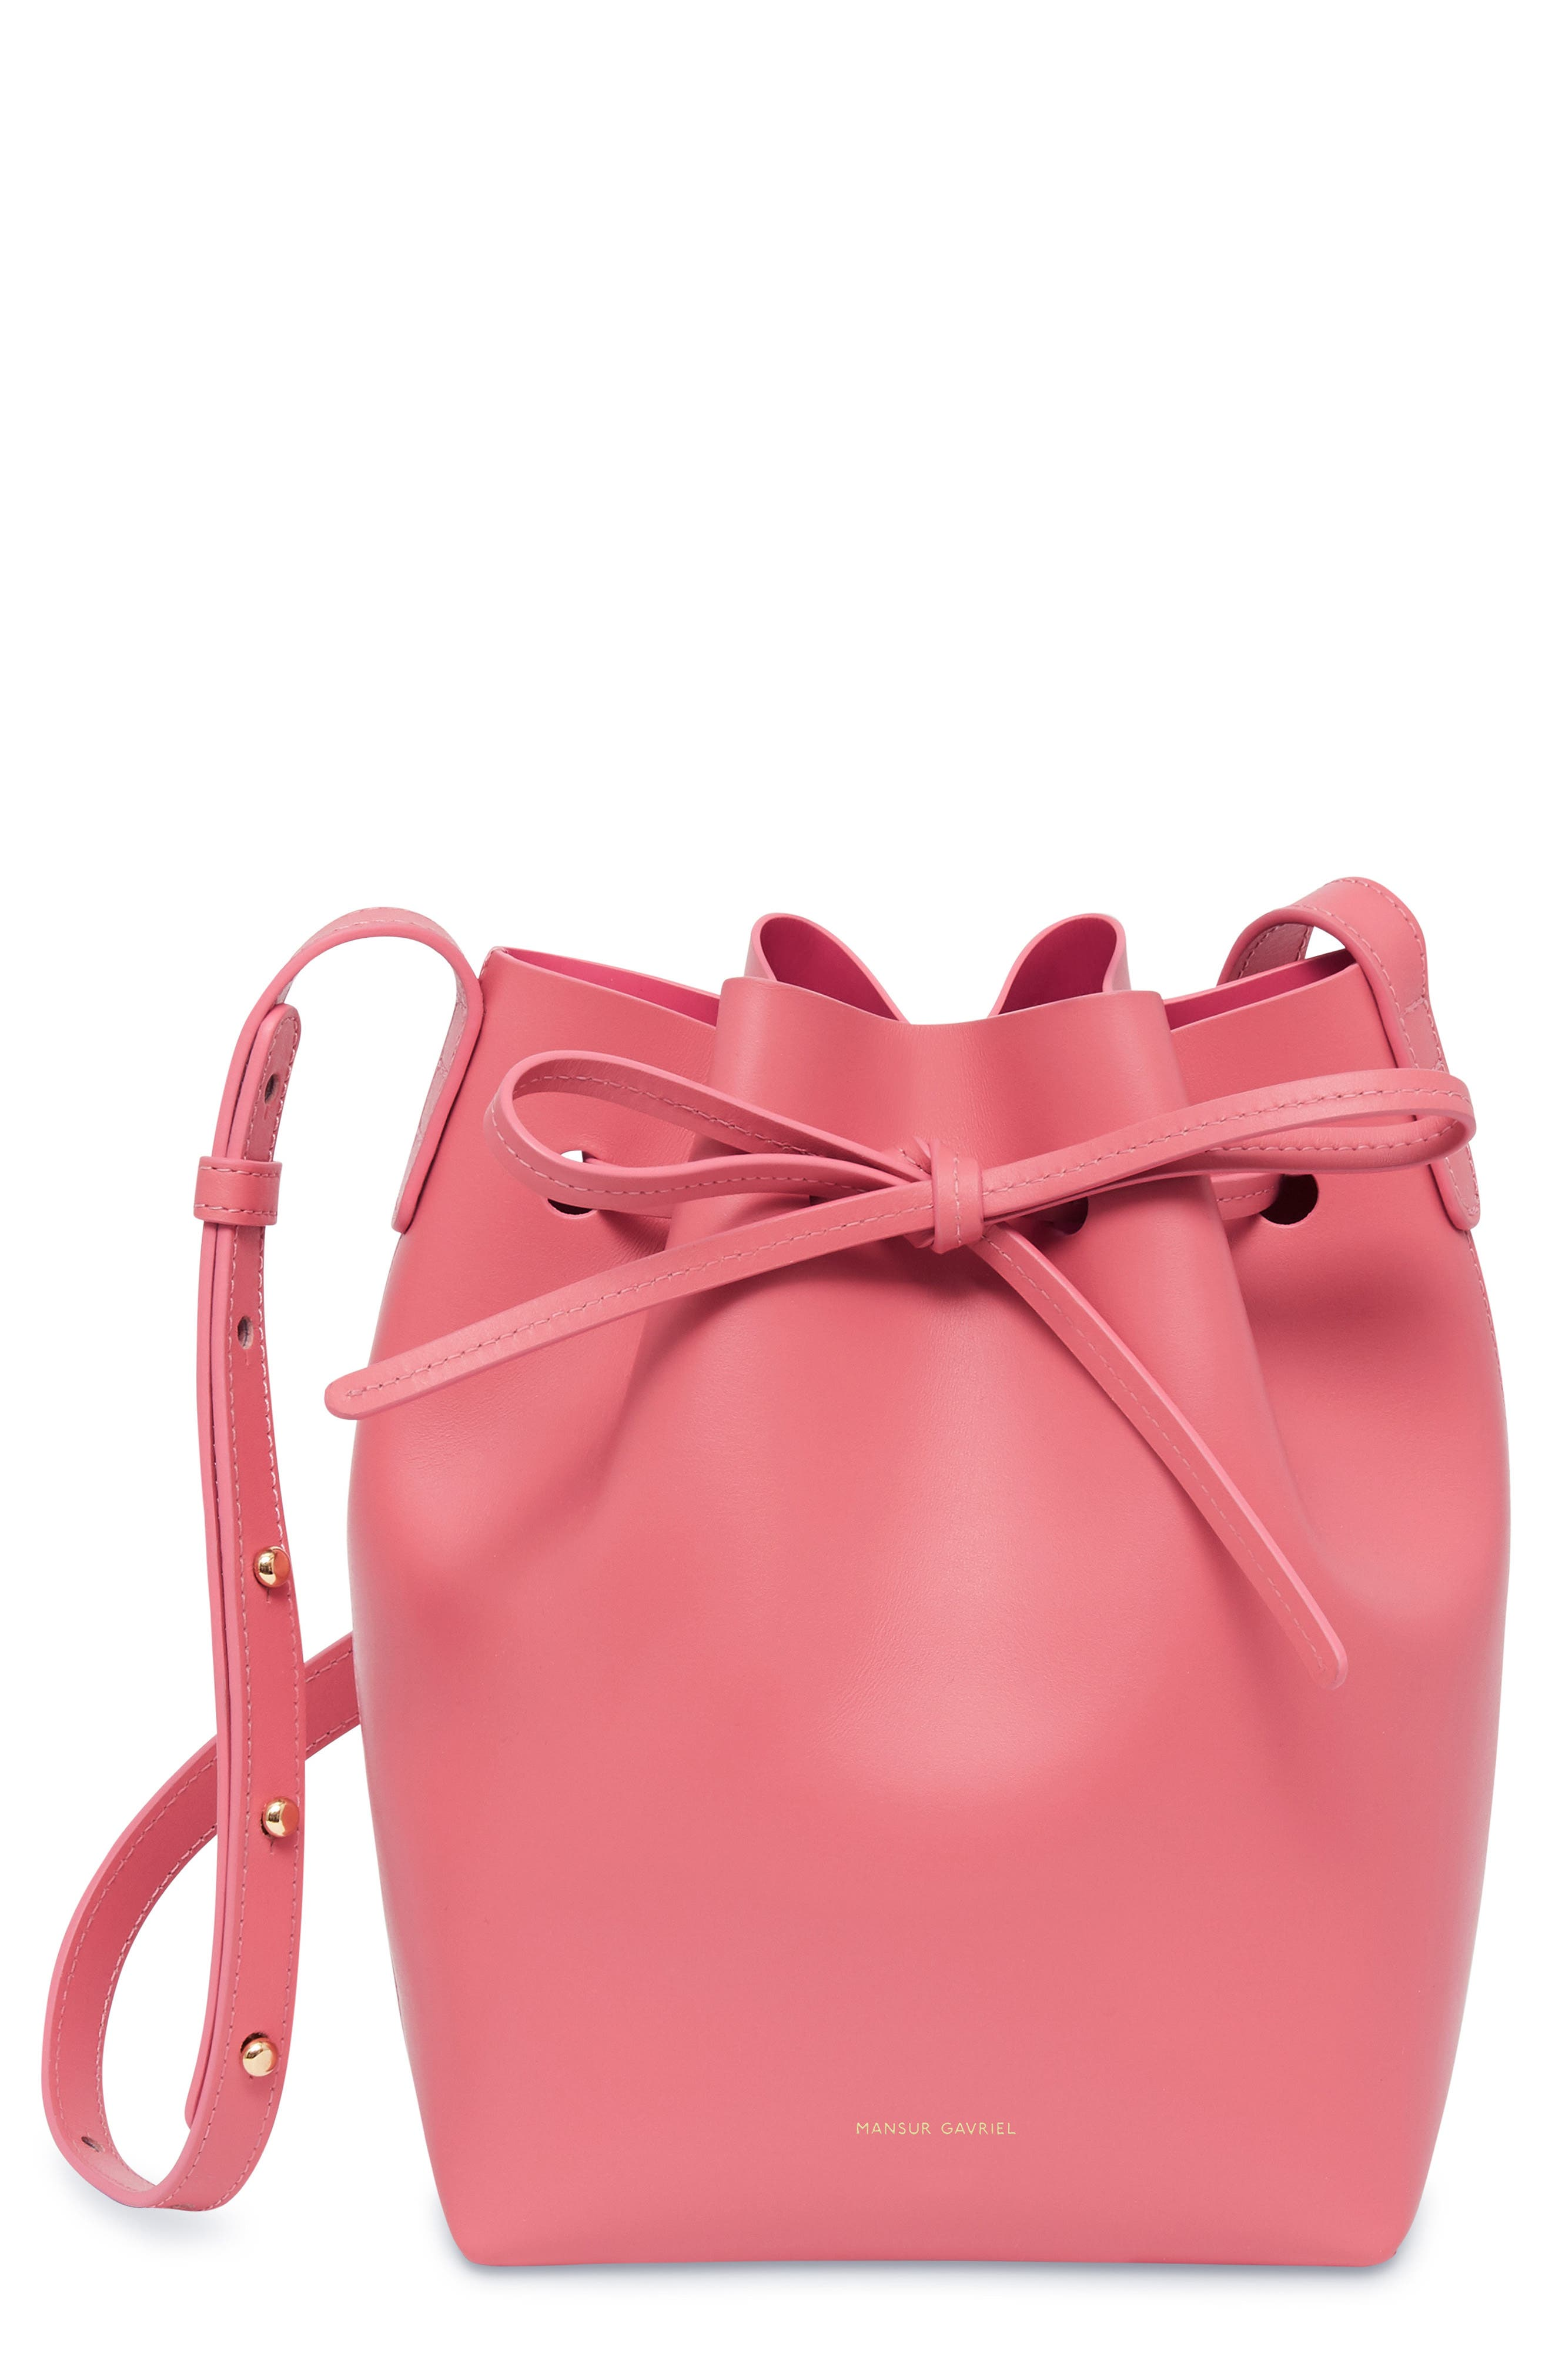 Mini Leather Bucket Bag,                             Main thumbnail 1, color,                             DOLLY